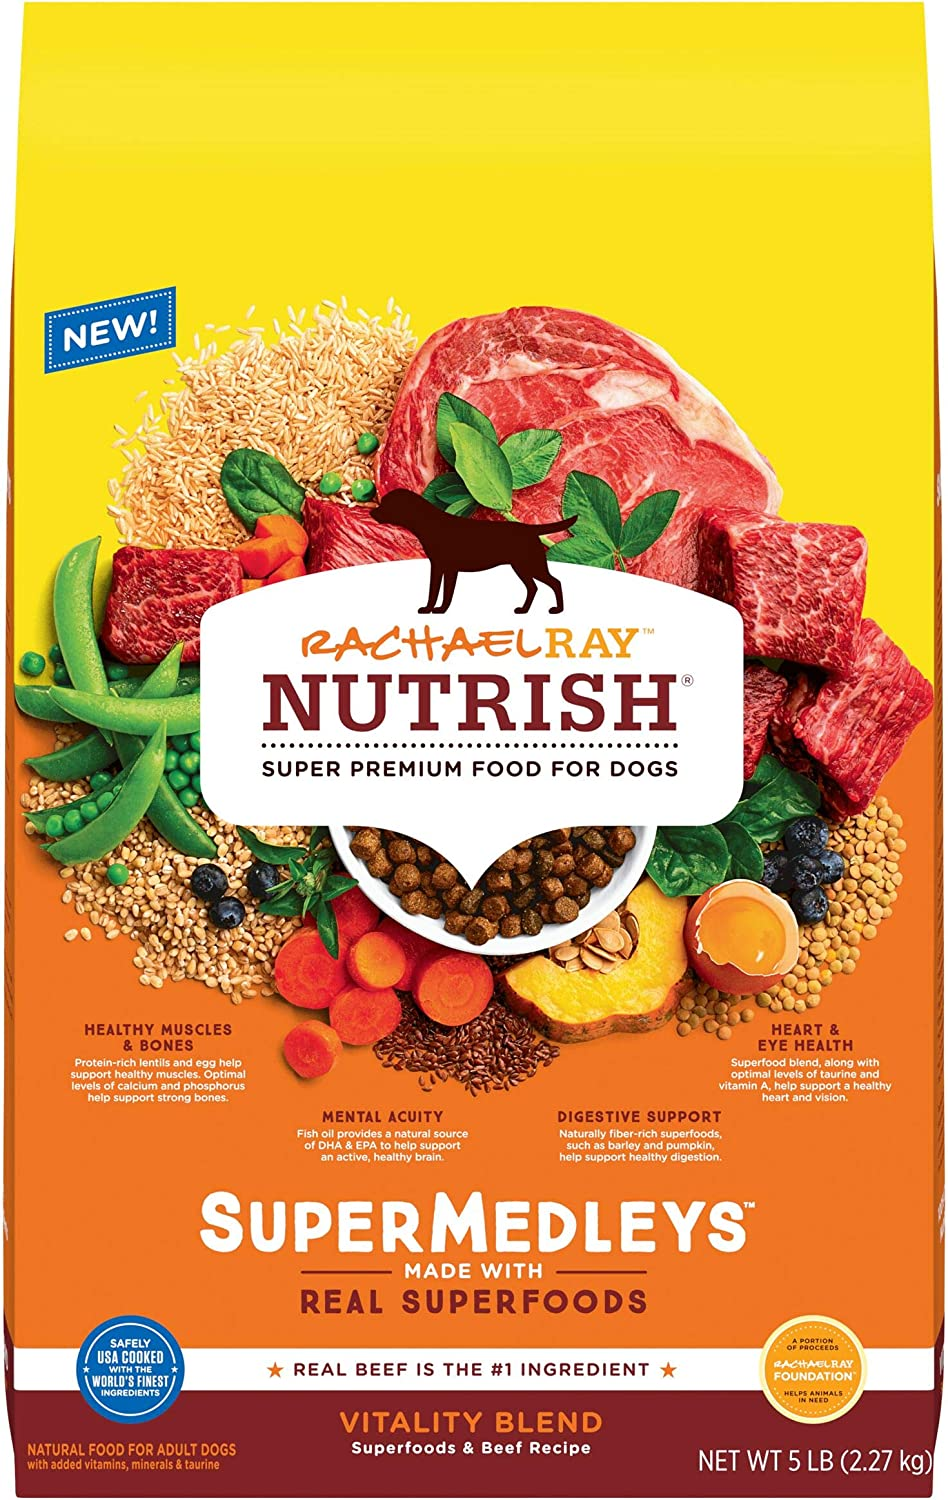 Rachael Ray Nutrish SuperMedleys Vitality Blend Premium Dry Dog Food, Beef, Salmon & Superfoods Recipe, 5 Pounds